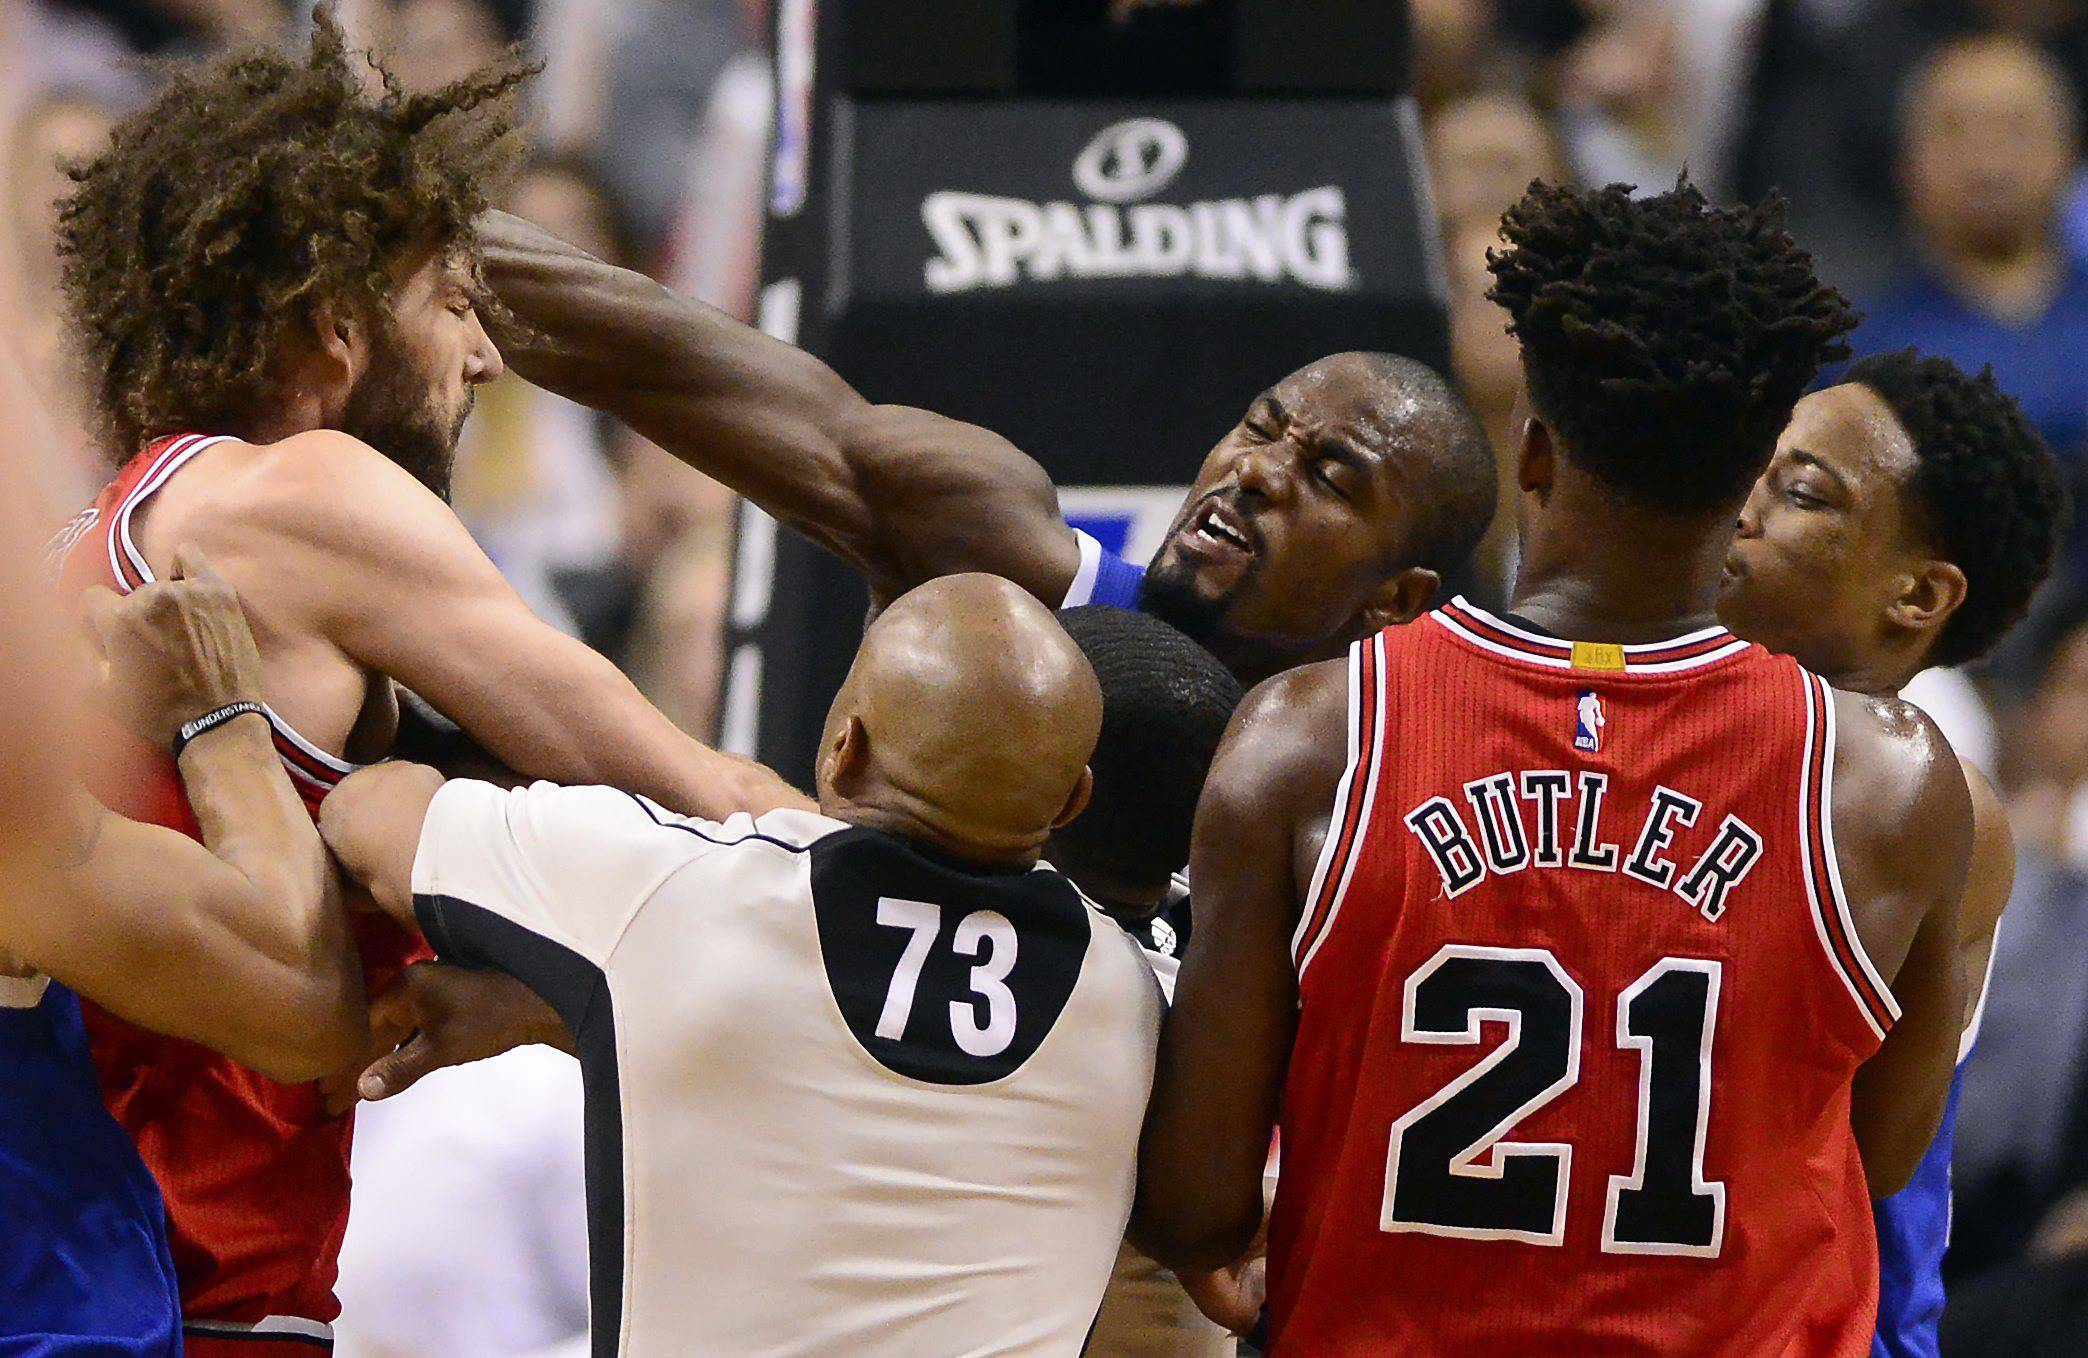 Toronto Raptors' Serge Ibaka, center, strikes Chicago Bulls' Robin Lopez, left, during a scuffle in the second half of an NBA basketball game in Toronto, Tuesday, March 21, 2017. (Frank Gunn/The Canadian Press via AP)